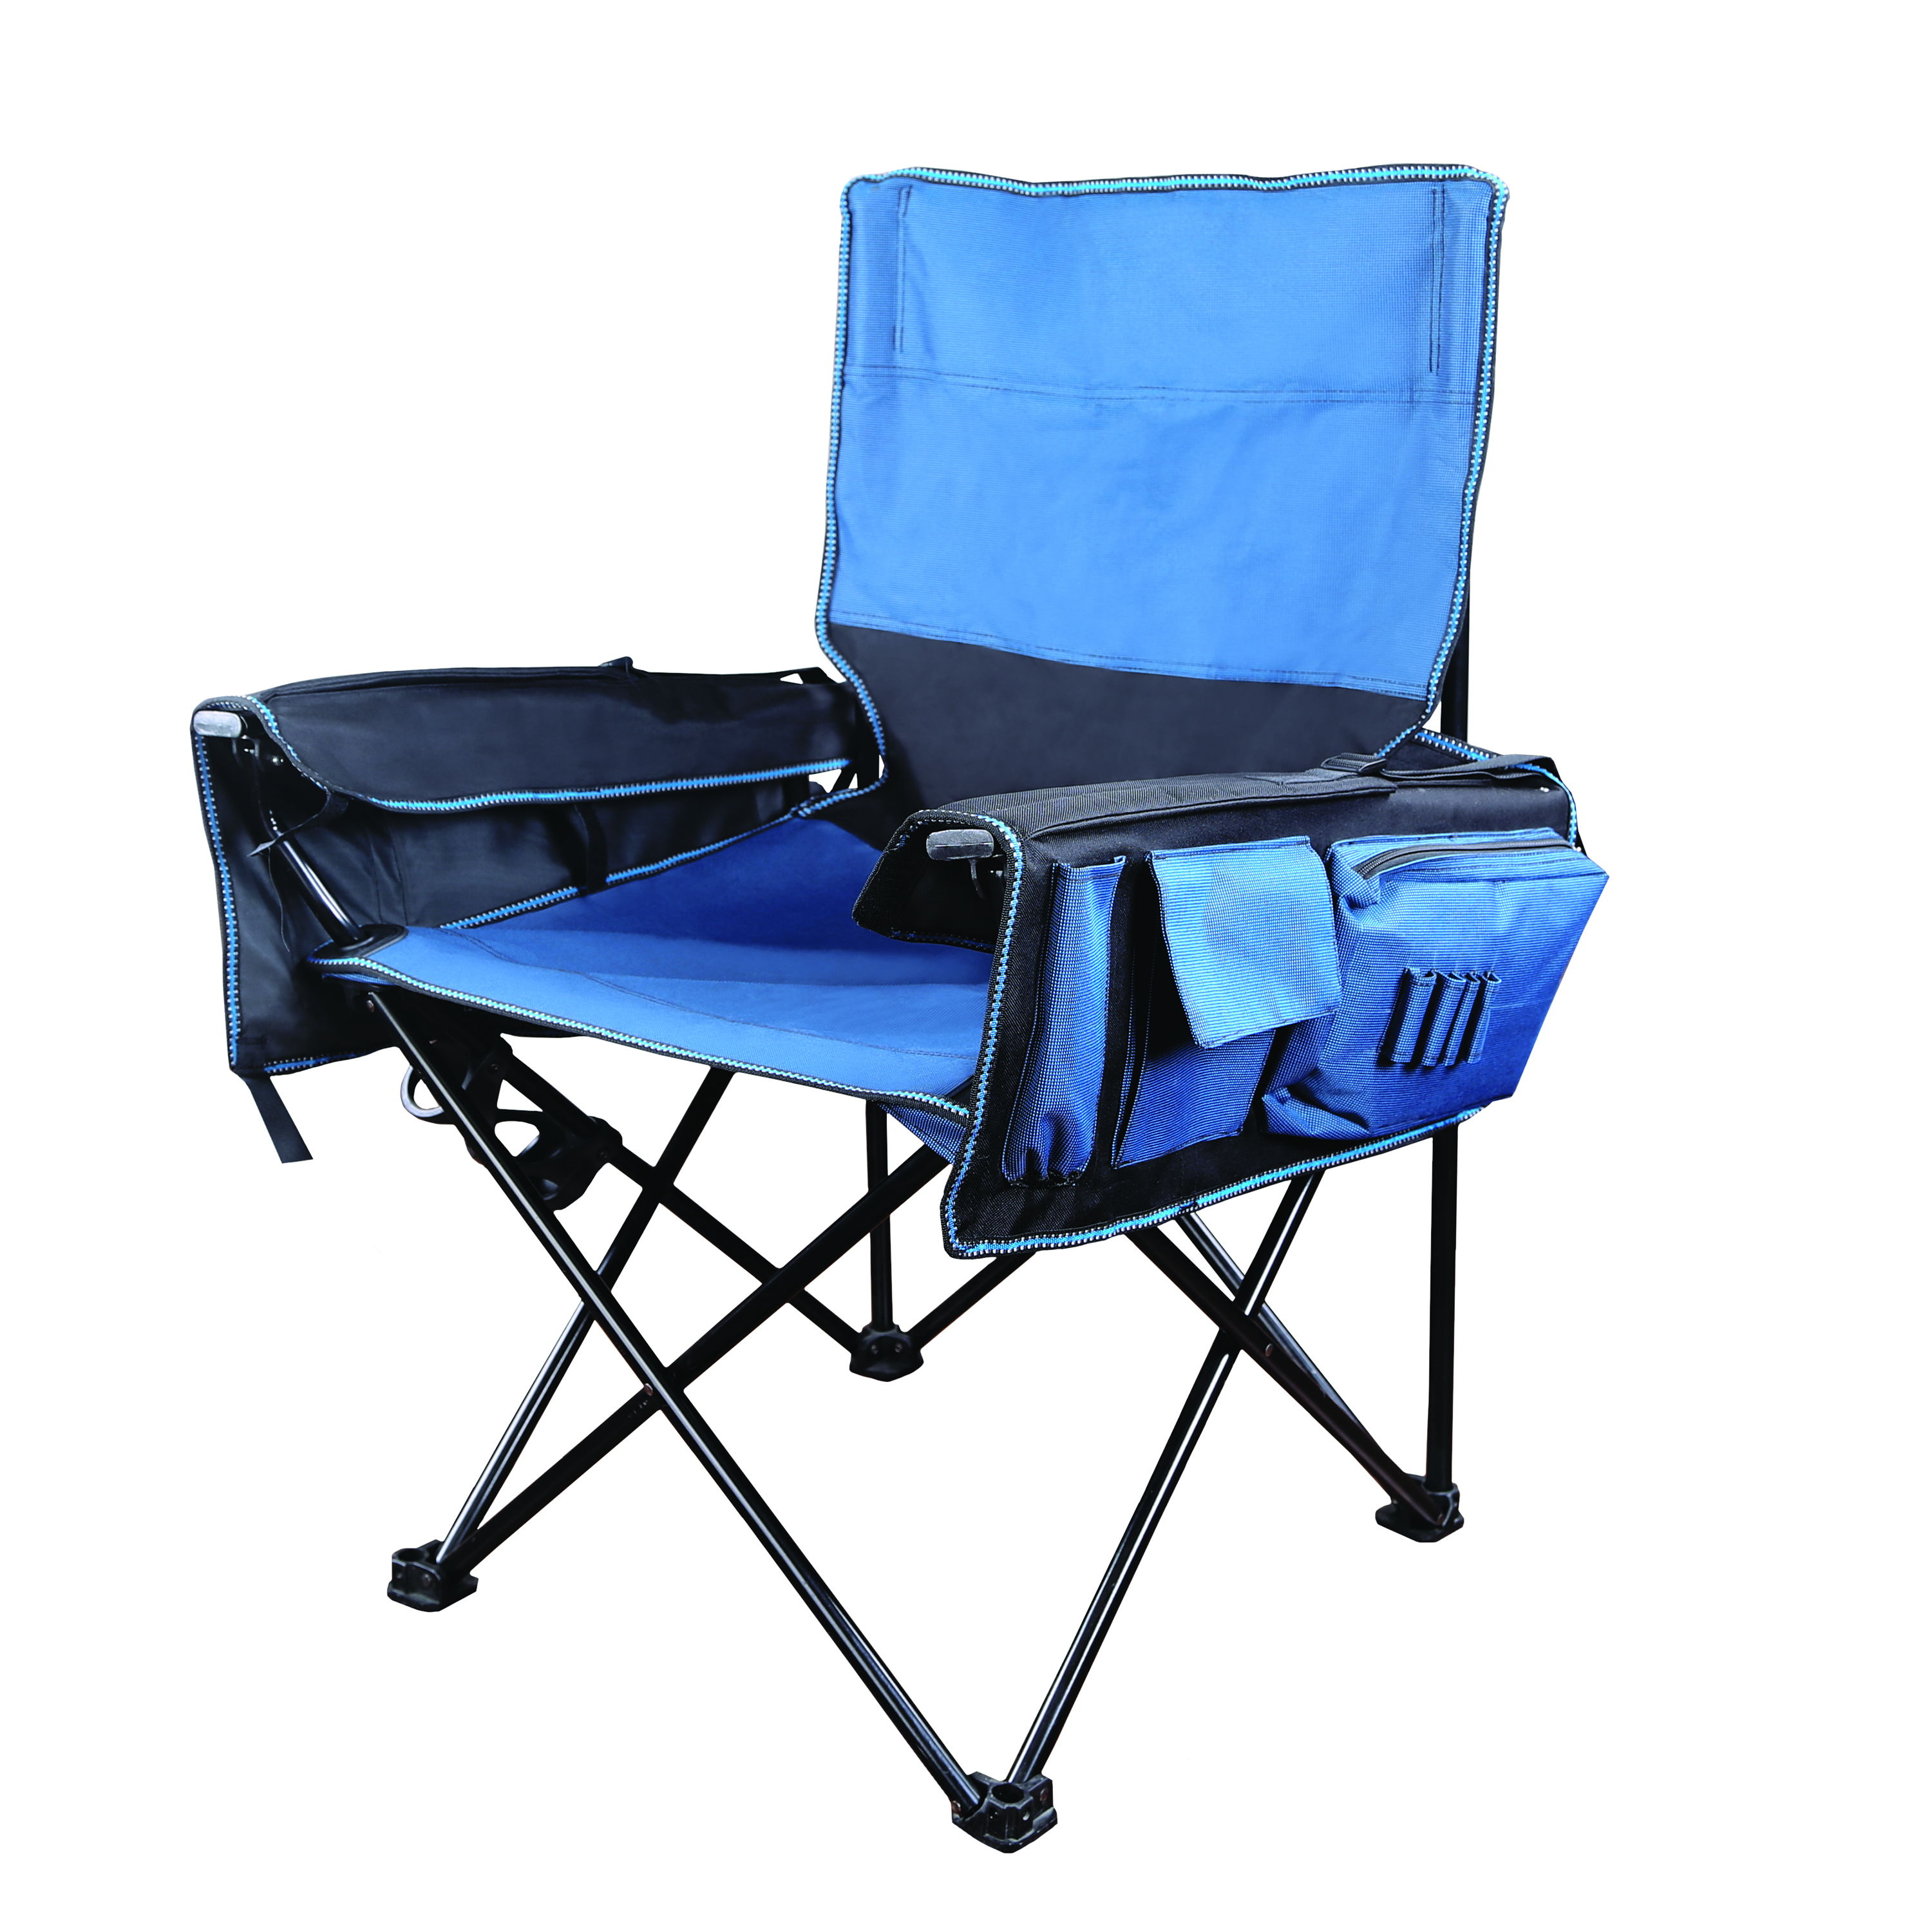 Stansport Deluxe Utility Arm Chair W Fishing Pole Holder